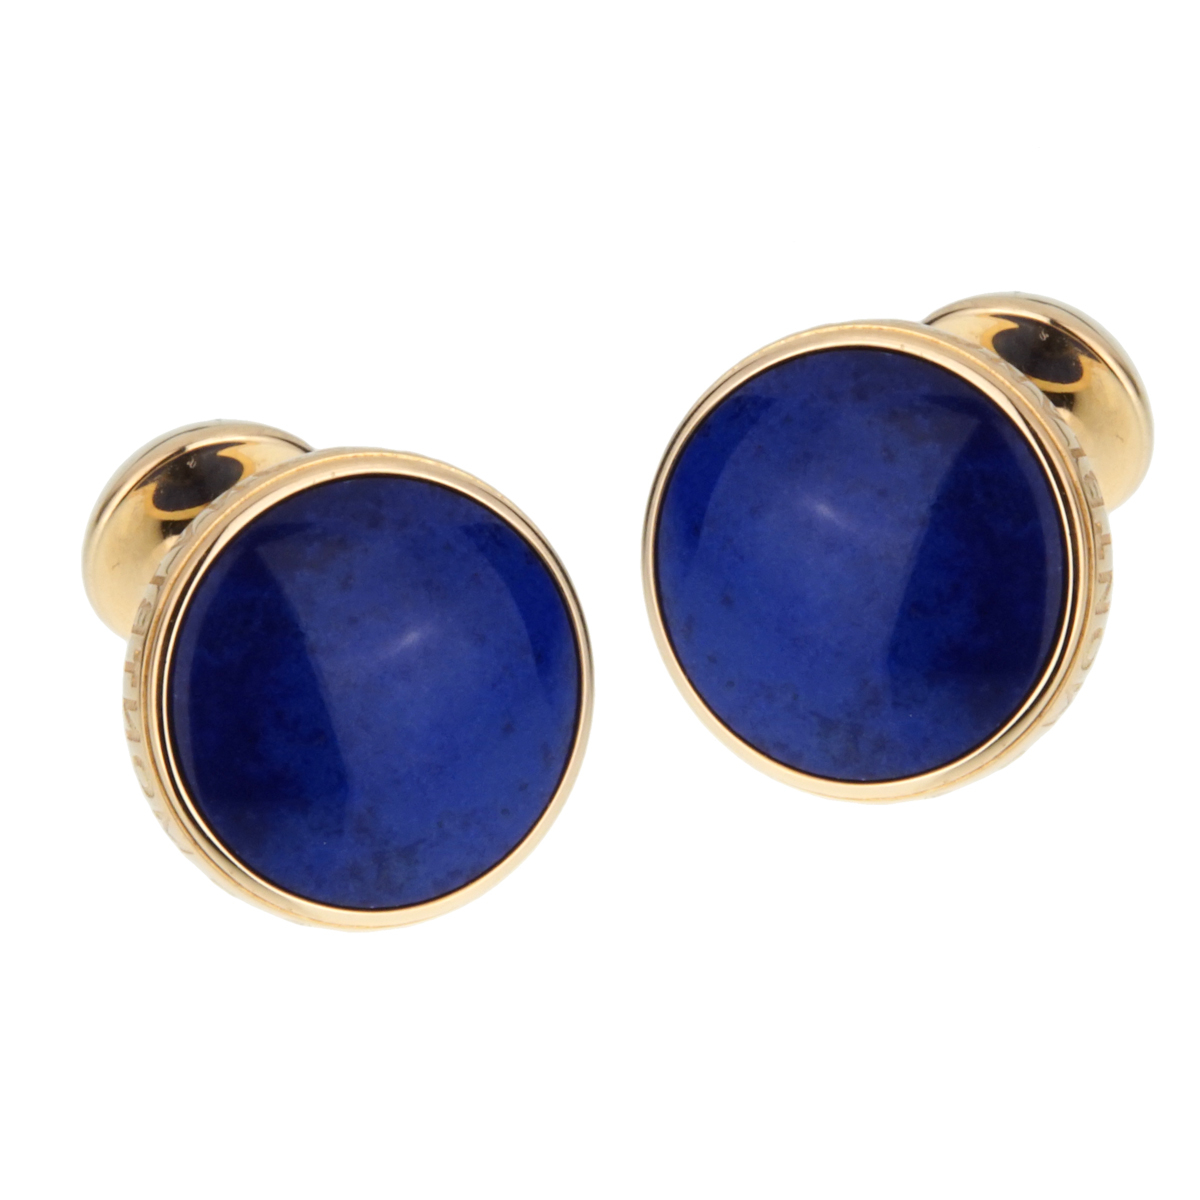 Montblanc Meisterstuck Yellow Gold and Lapis Cufflinks - Montblanc Jewelry